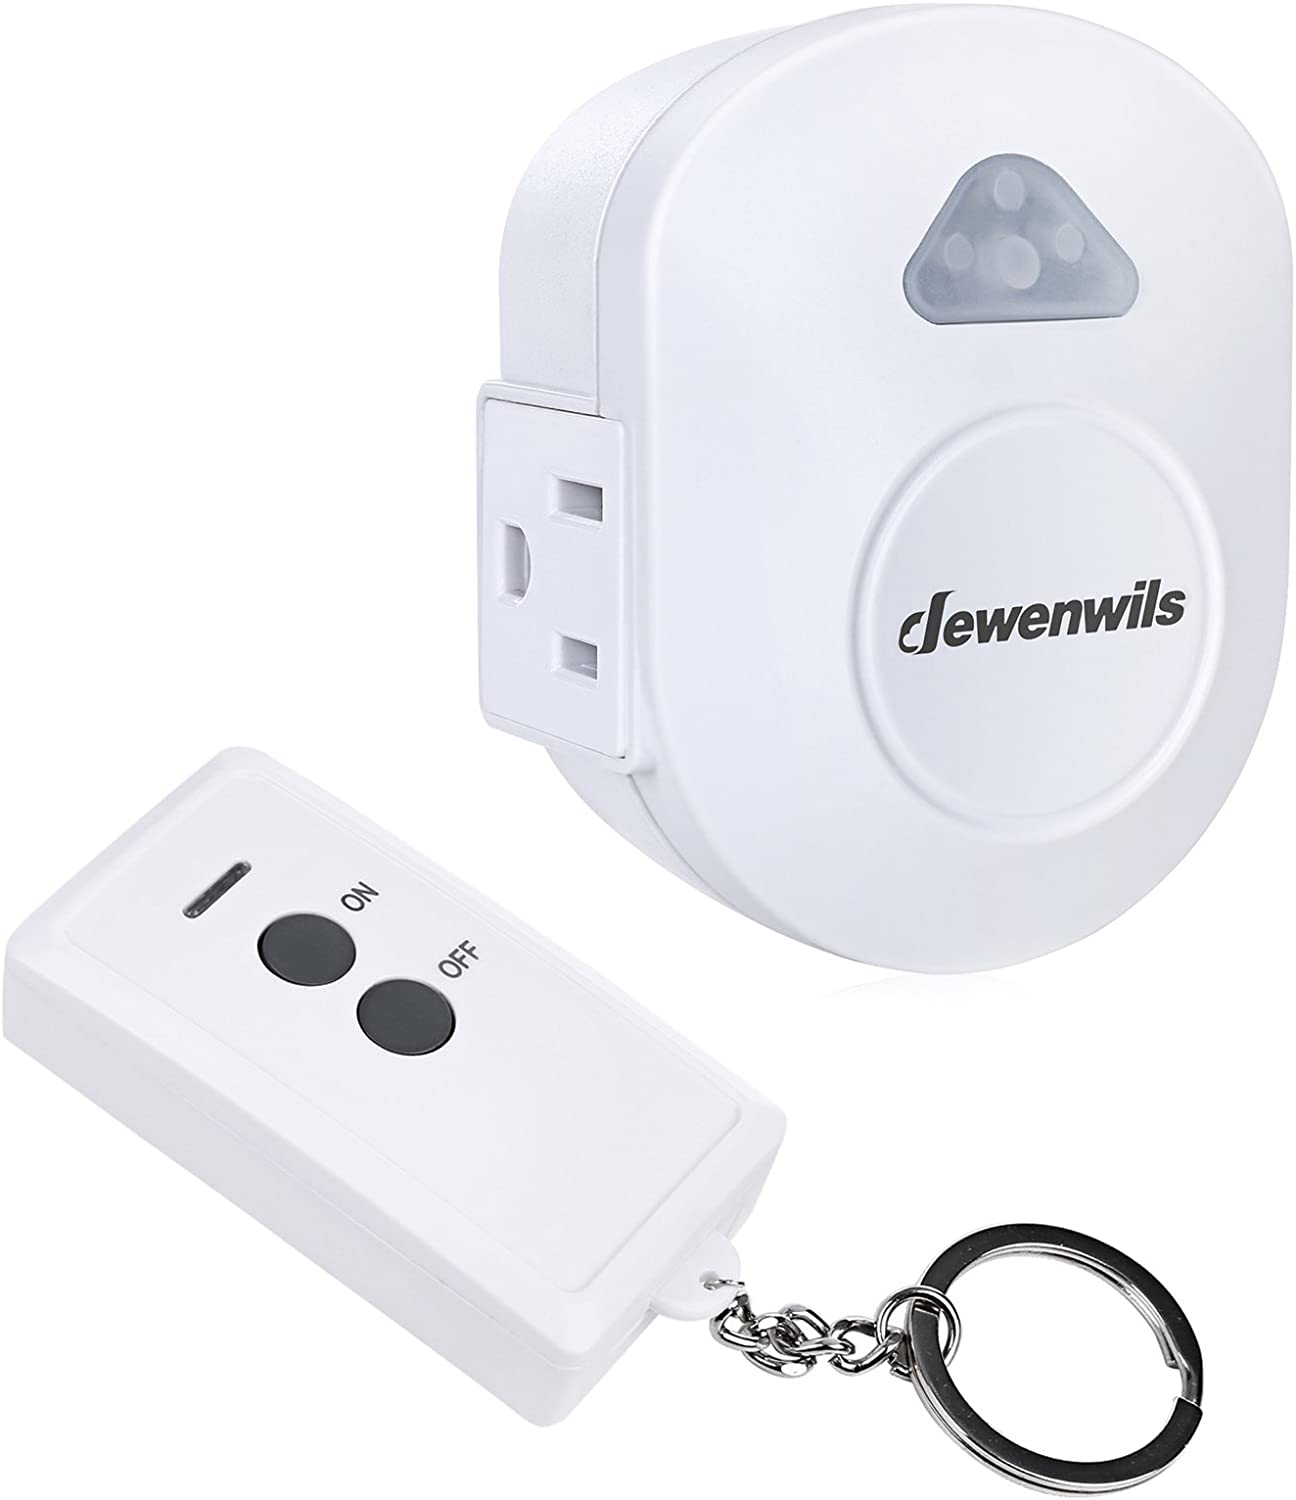 DEWENWILS Wireless Remote Control Electrical Outlet Switch, RF Remote Control ON OFF Light Switch Kit, No Interference, 15 AMP Heavy Duty, 100 FT Range, Compact Side Plug